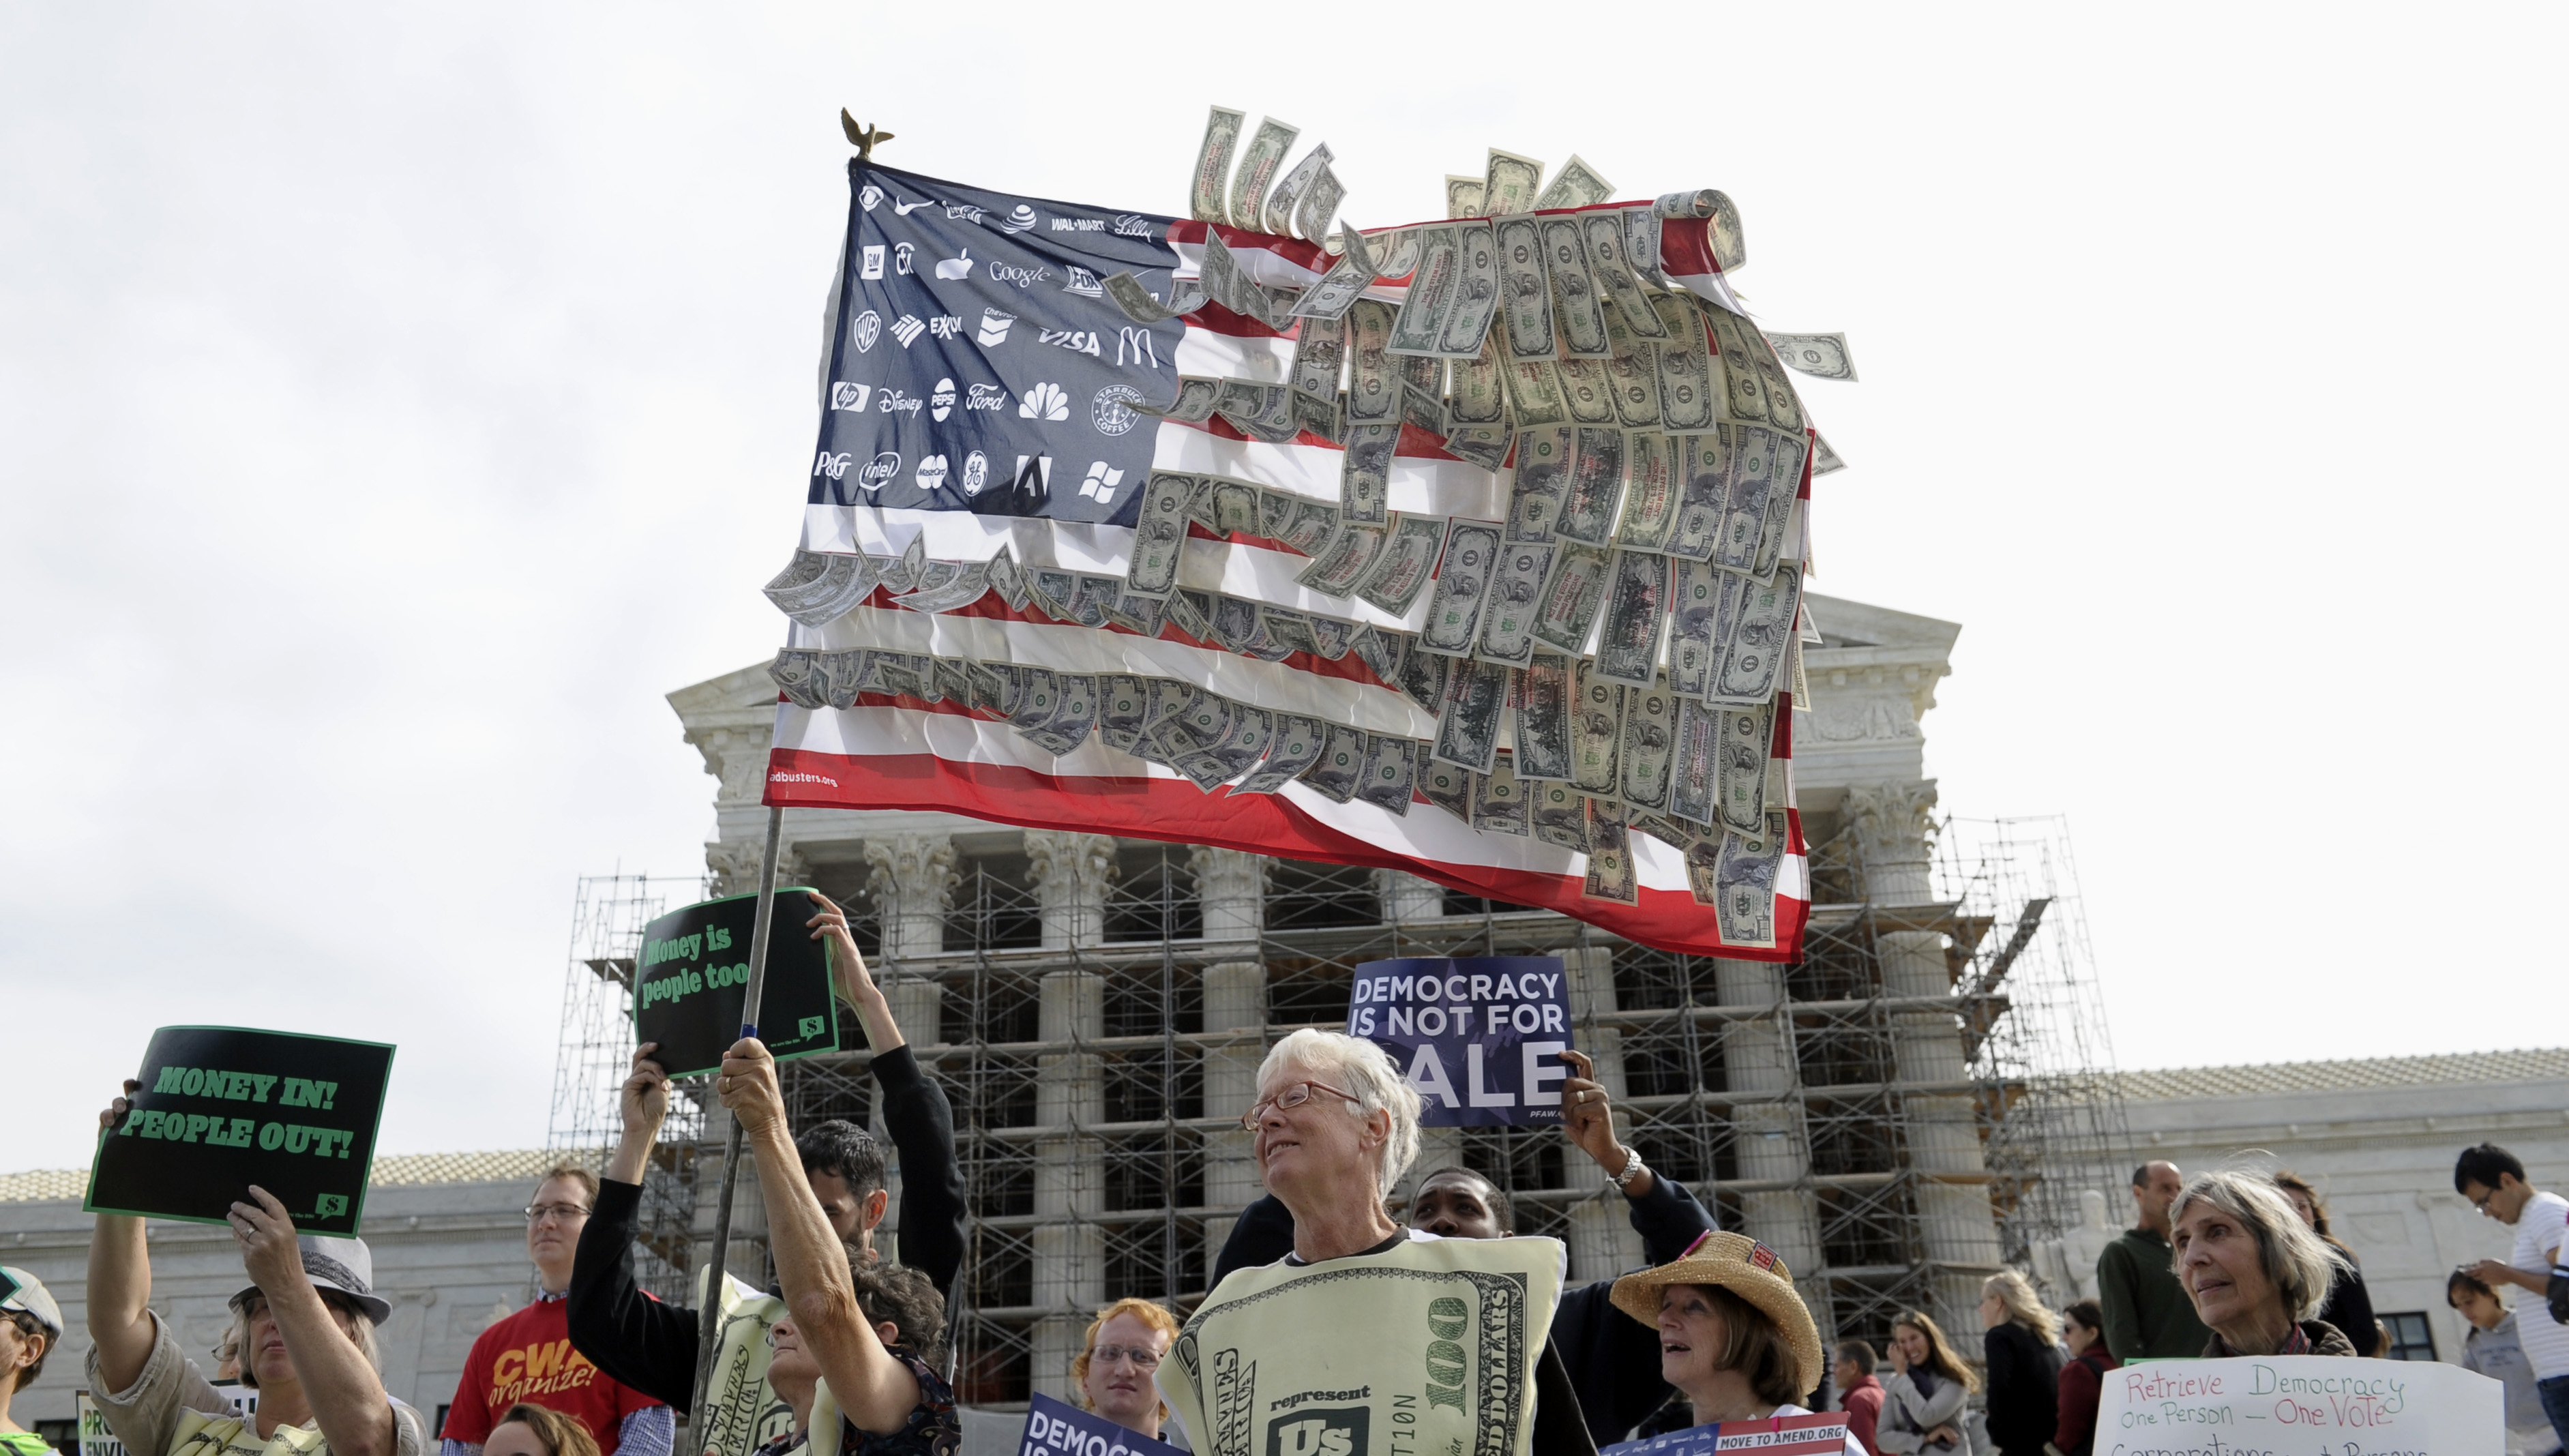 Why is the case citizens united v federal elections commission important to the future?